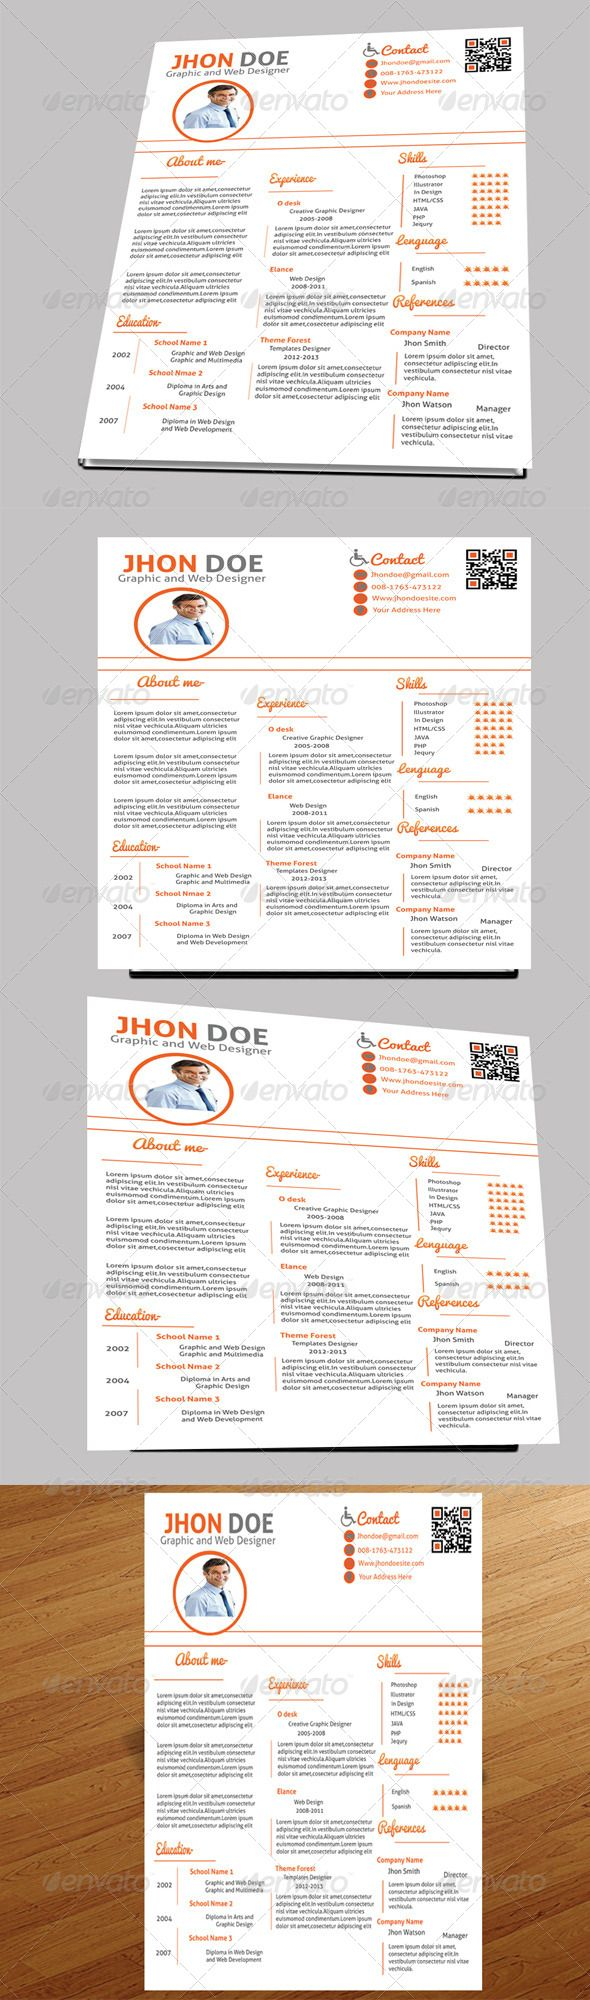 102 Best Print Templates Images On Pinterest Cleanses Club